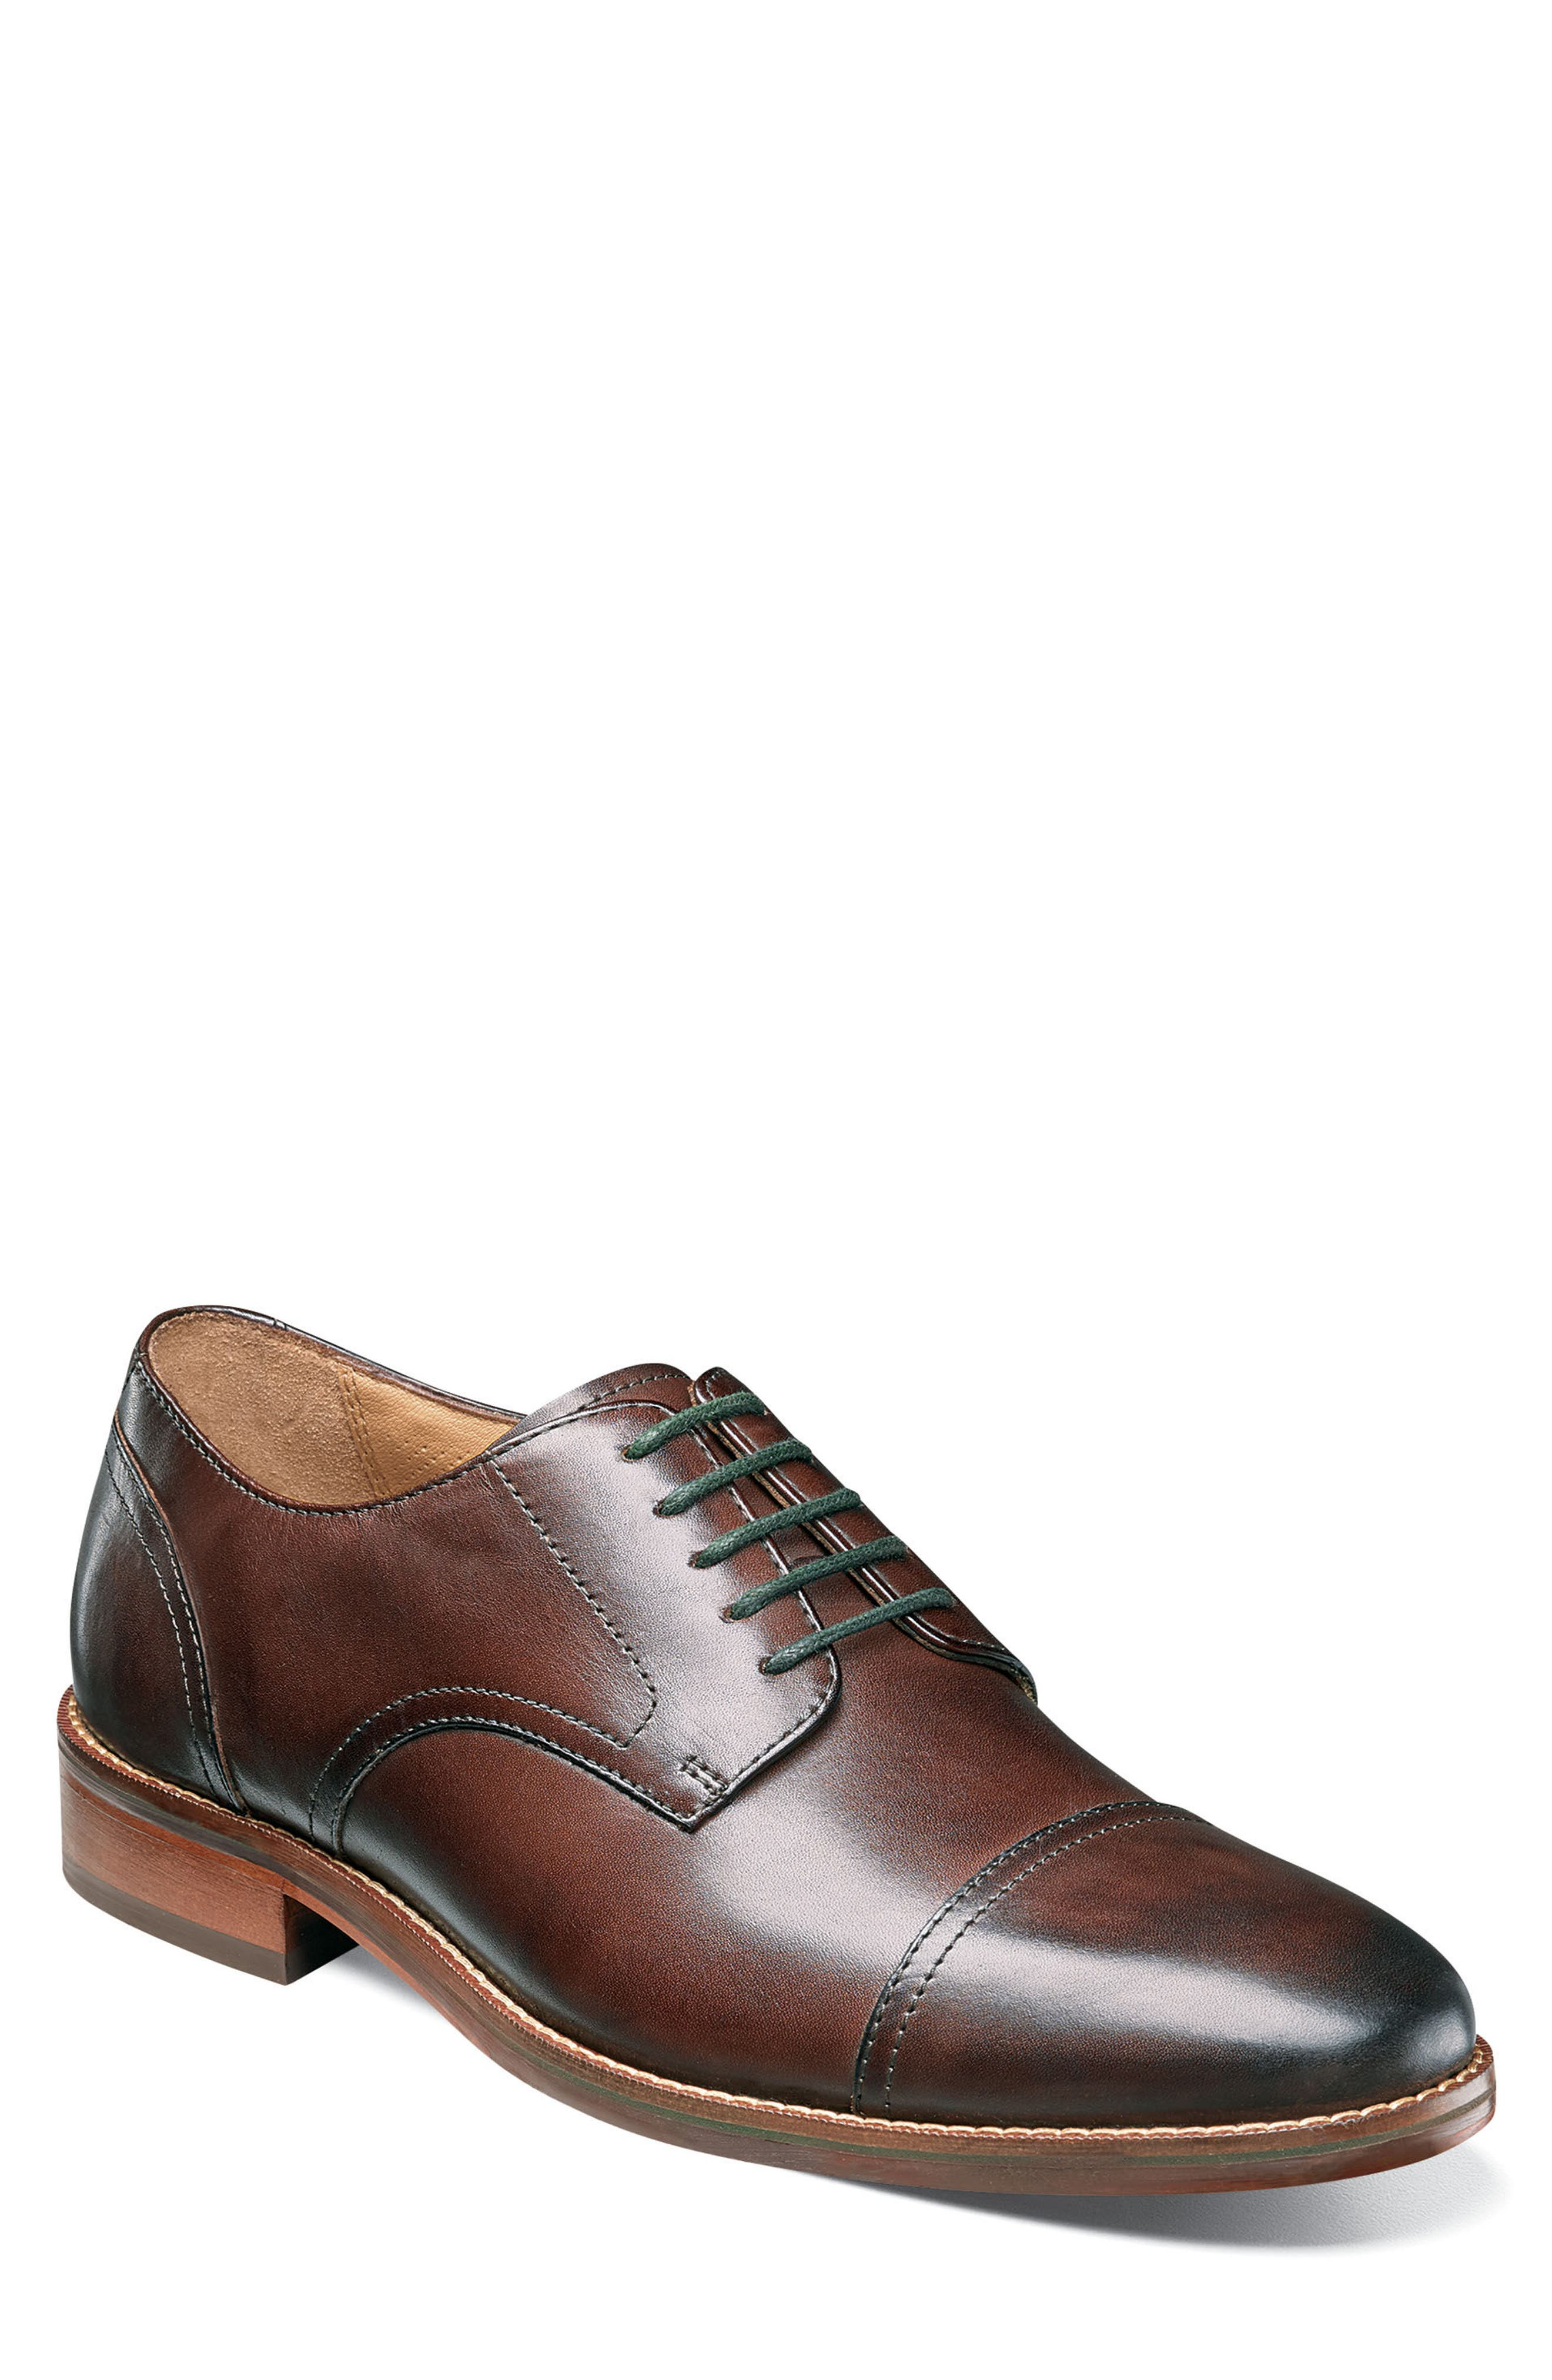 Salerno Cap Toe Derby,                             Main thumbnail 1, color,                             Brown Leather